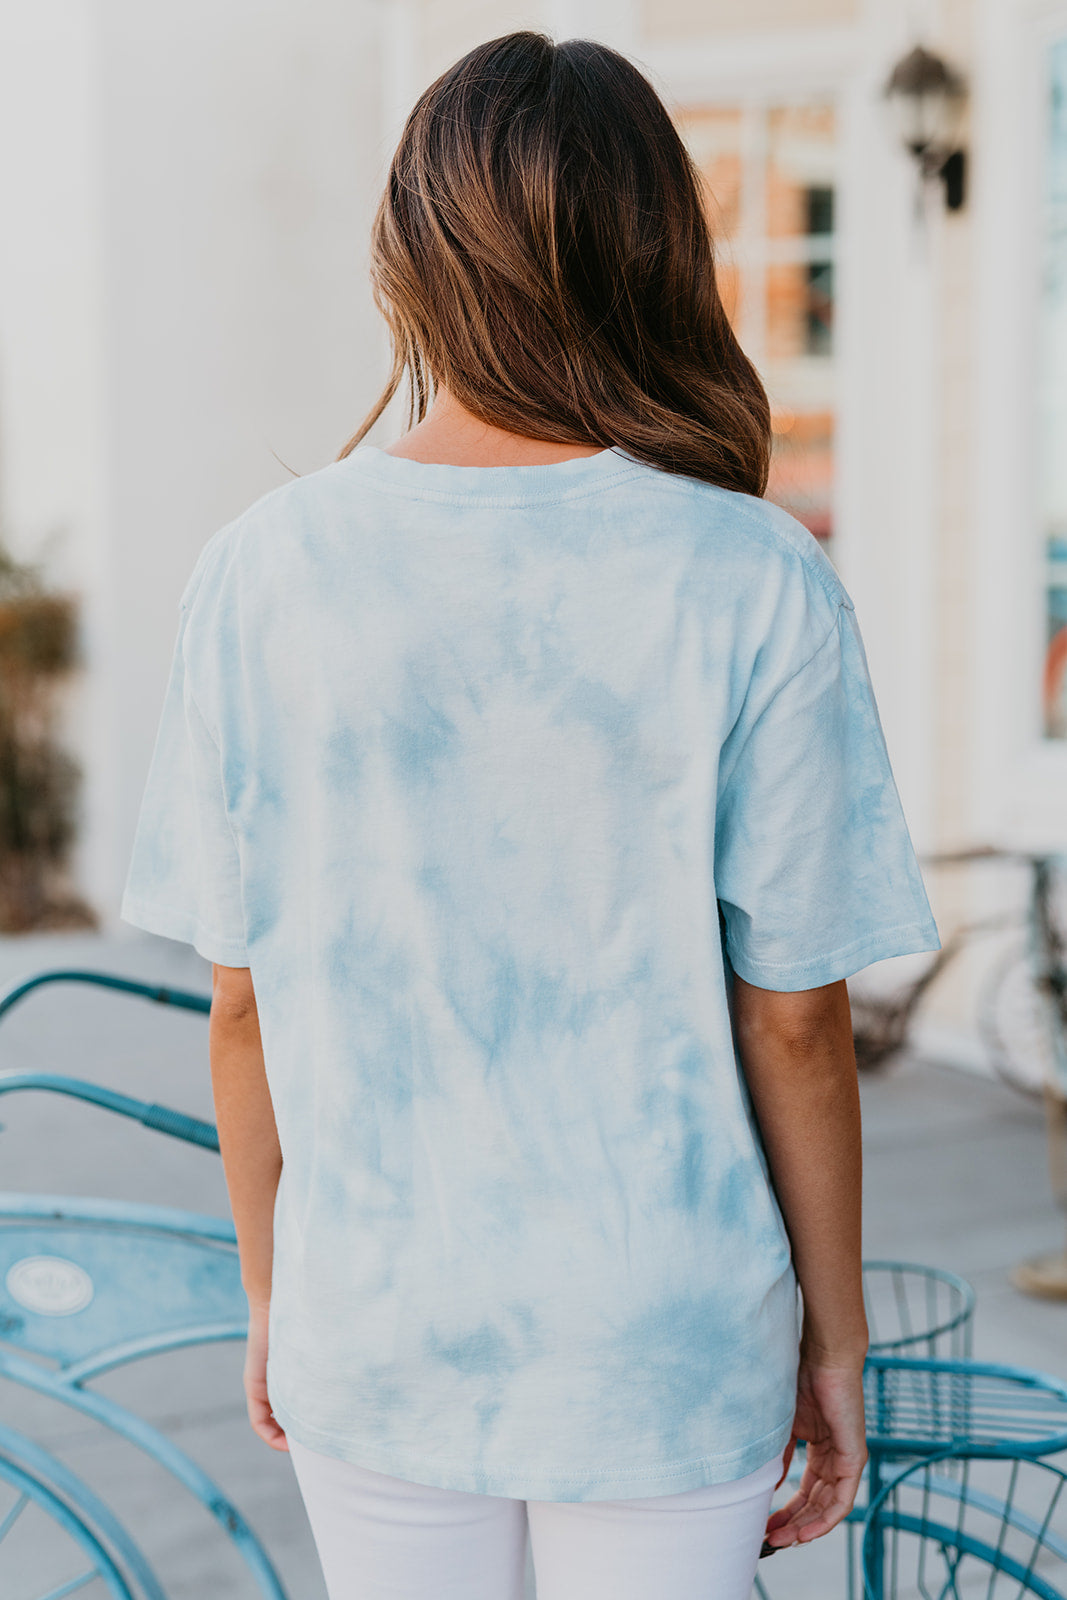 THE SHORT SLEEVE TIE DYE TOP IN BLUE DREAM